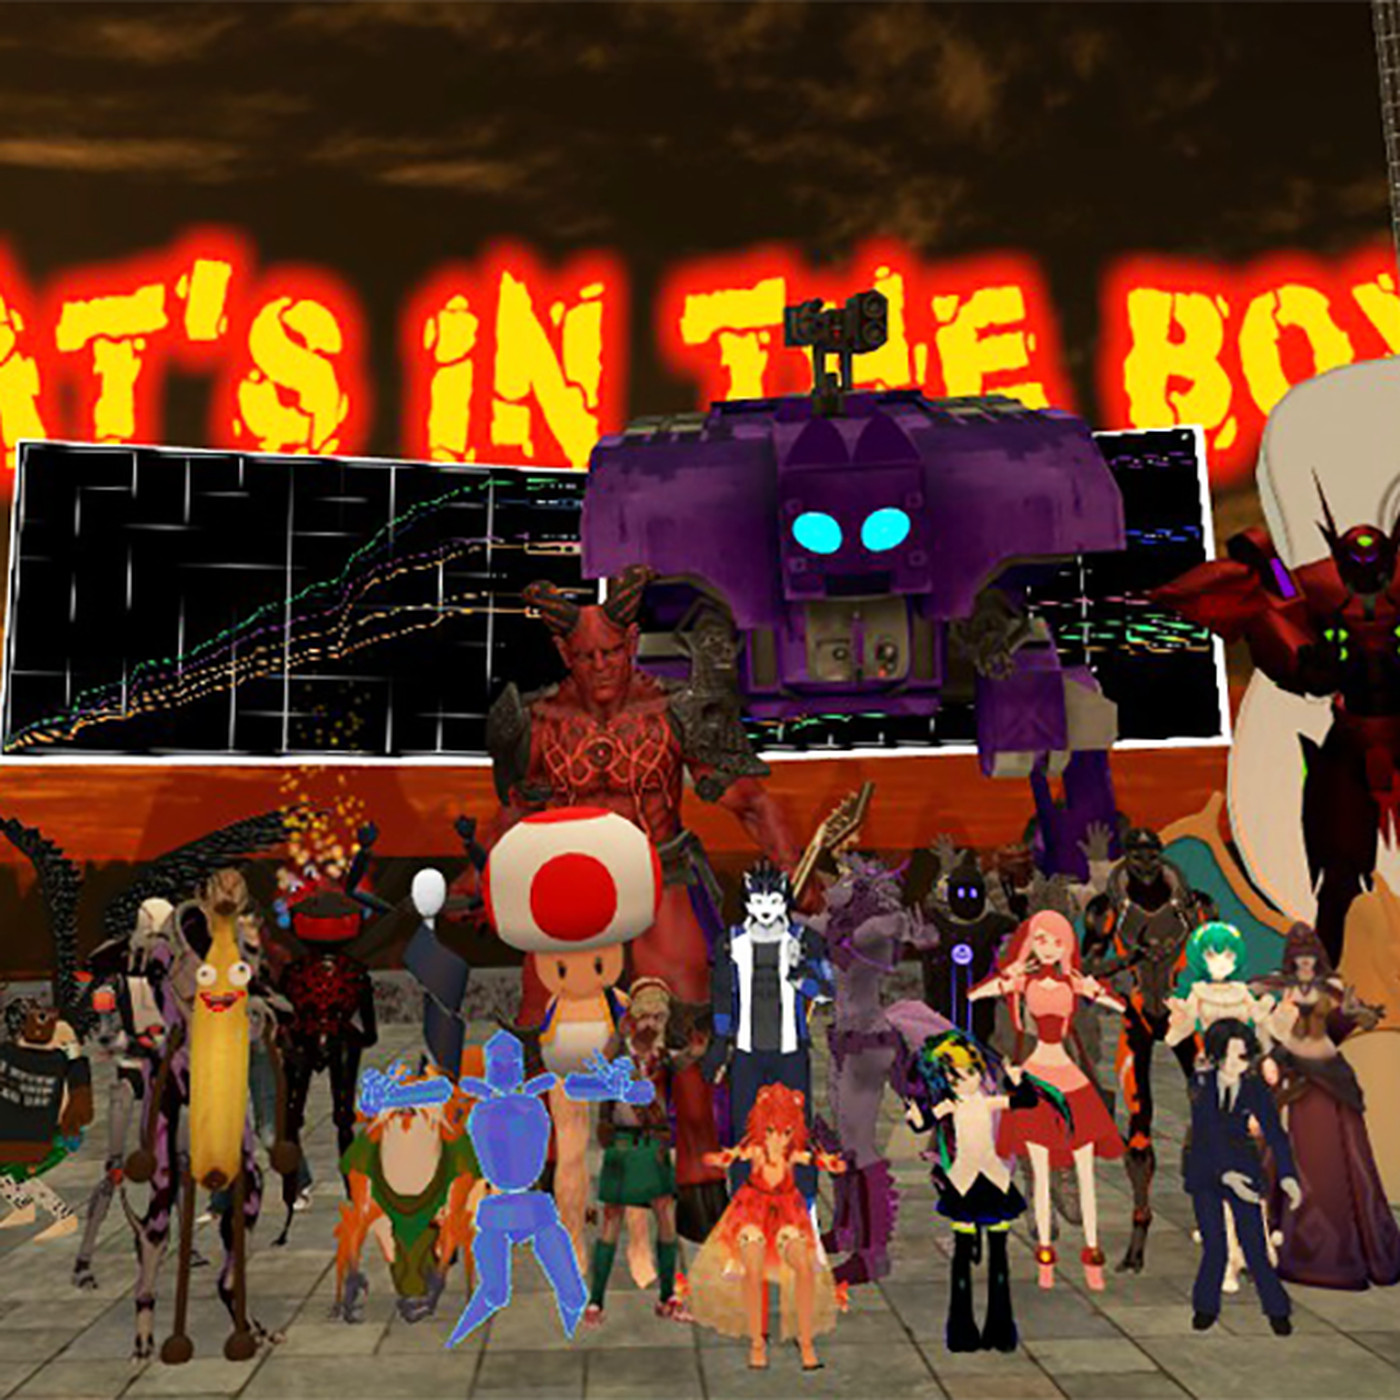 VRChat is a bizarre phenomenon that has Twitch, YouTube